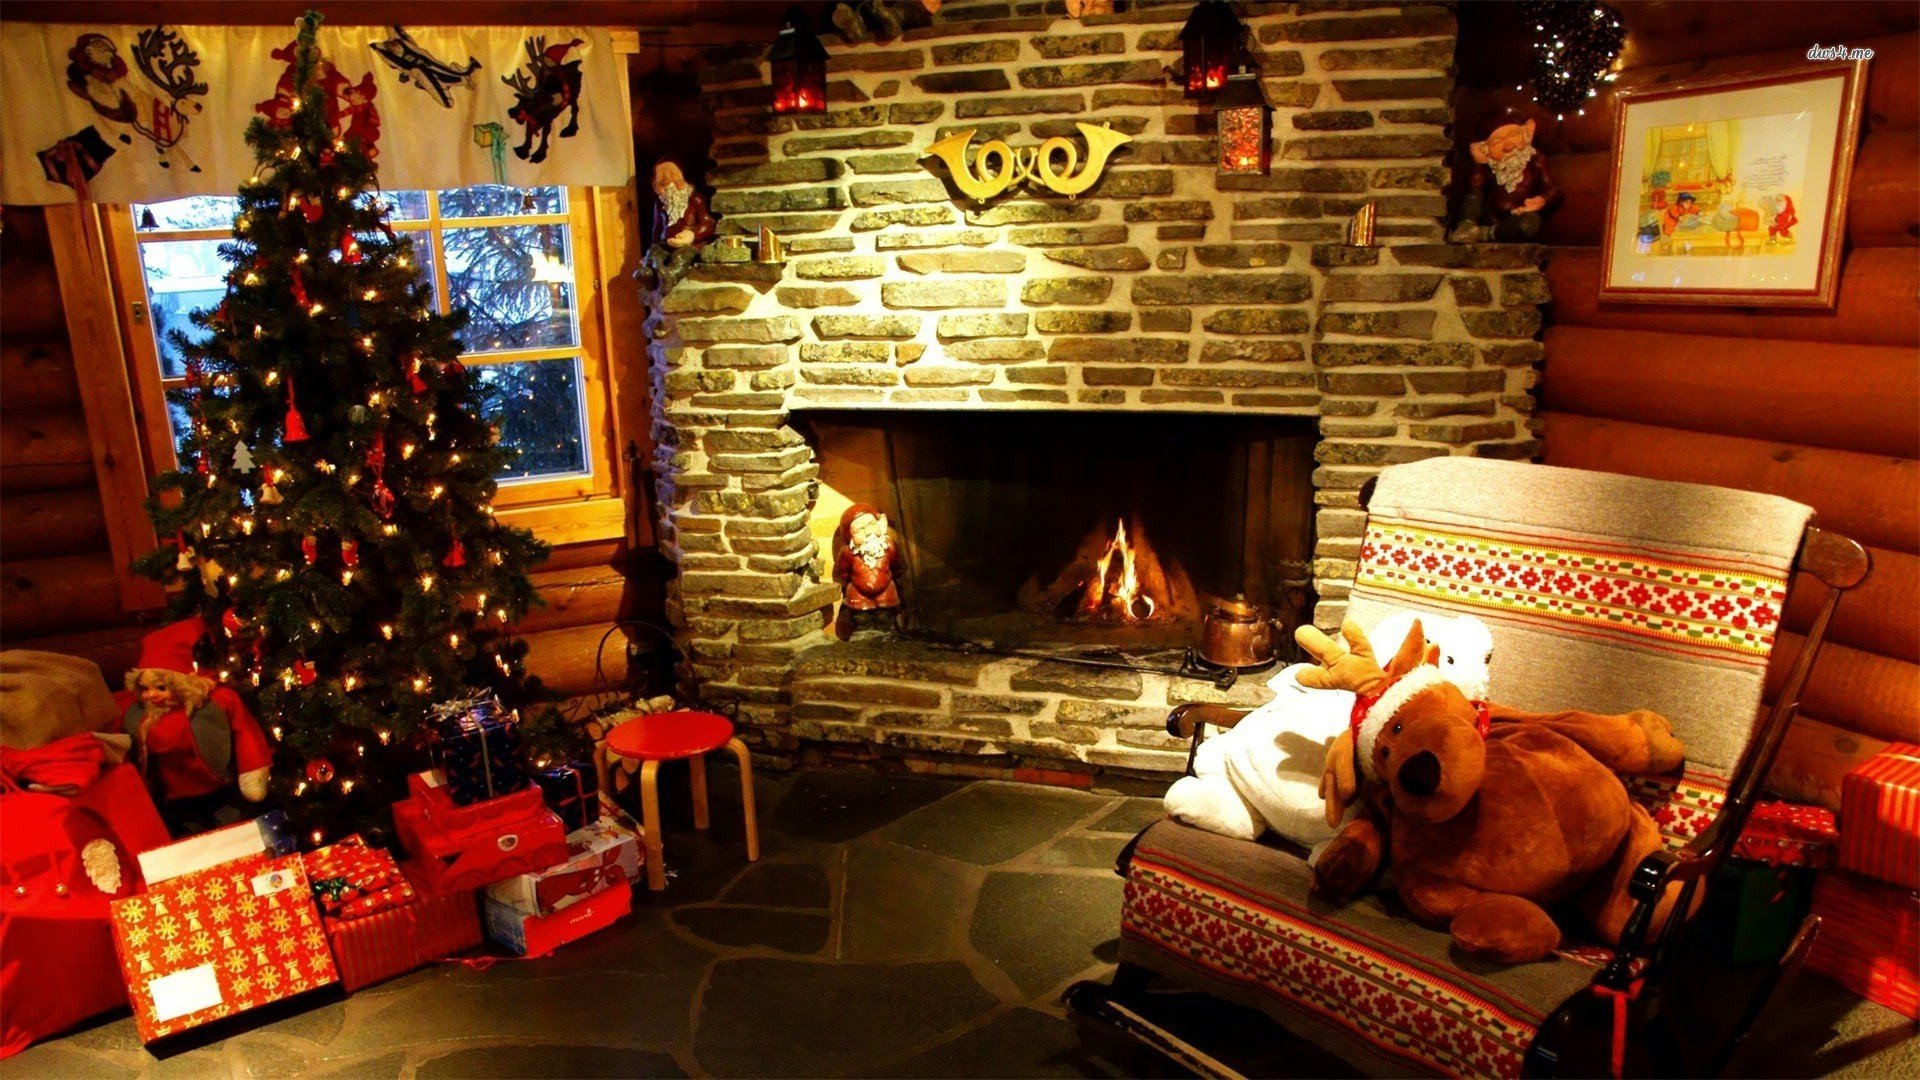 Christmas fireplace wallpaper   Holiday wallpapers   13156 1920x1080